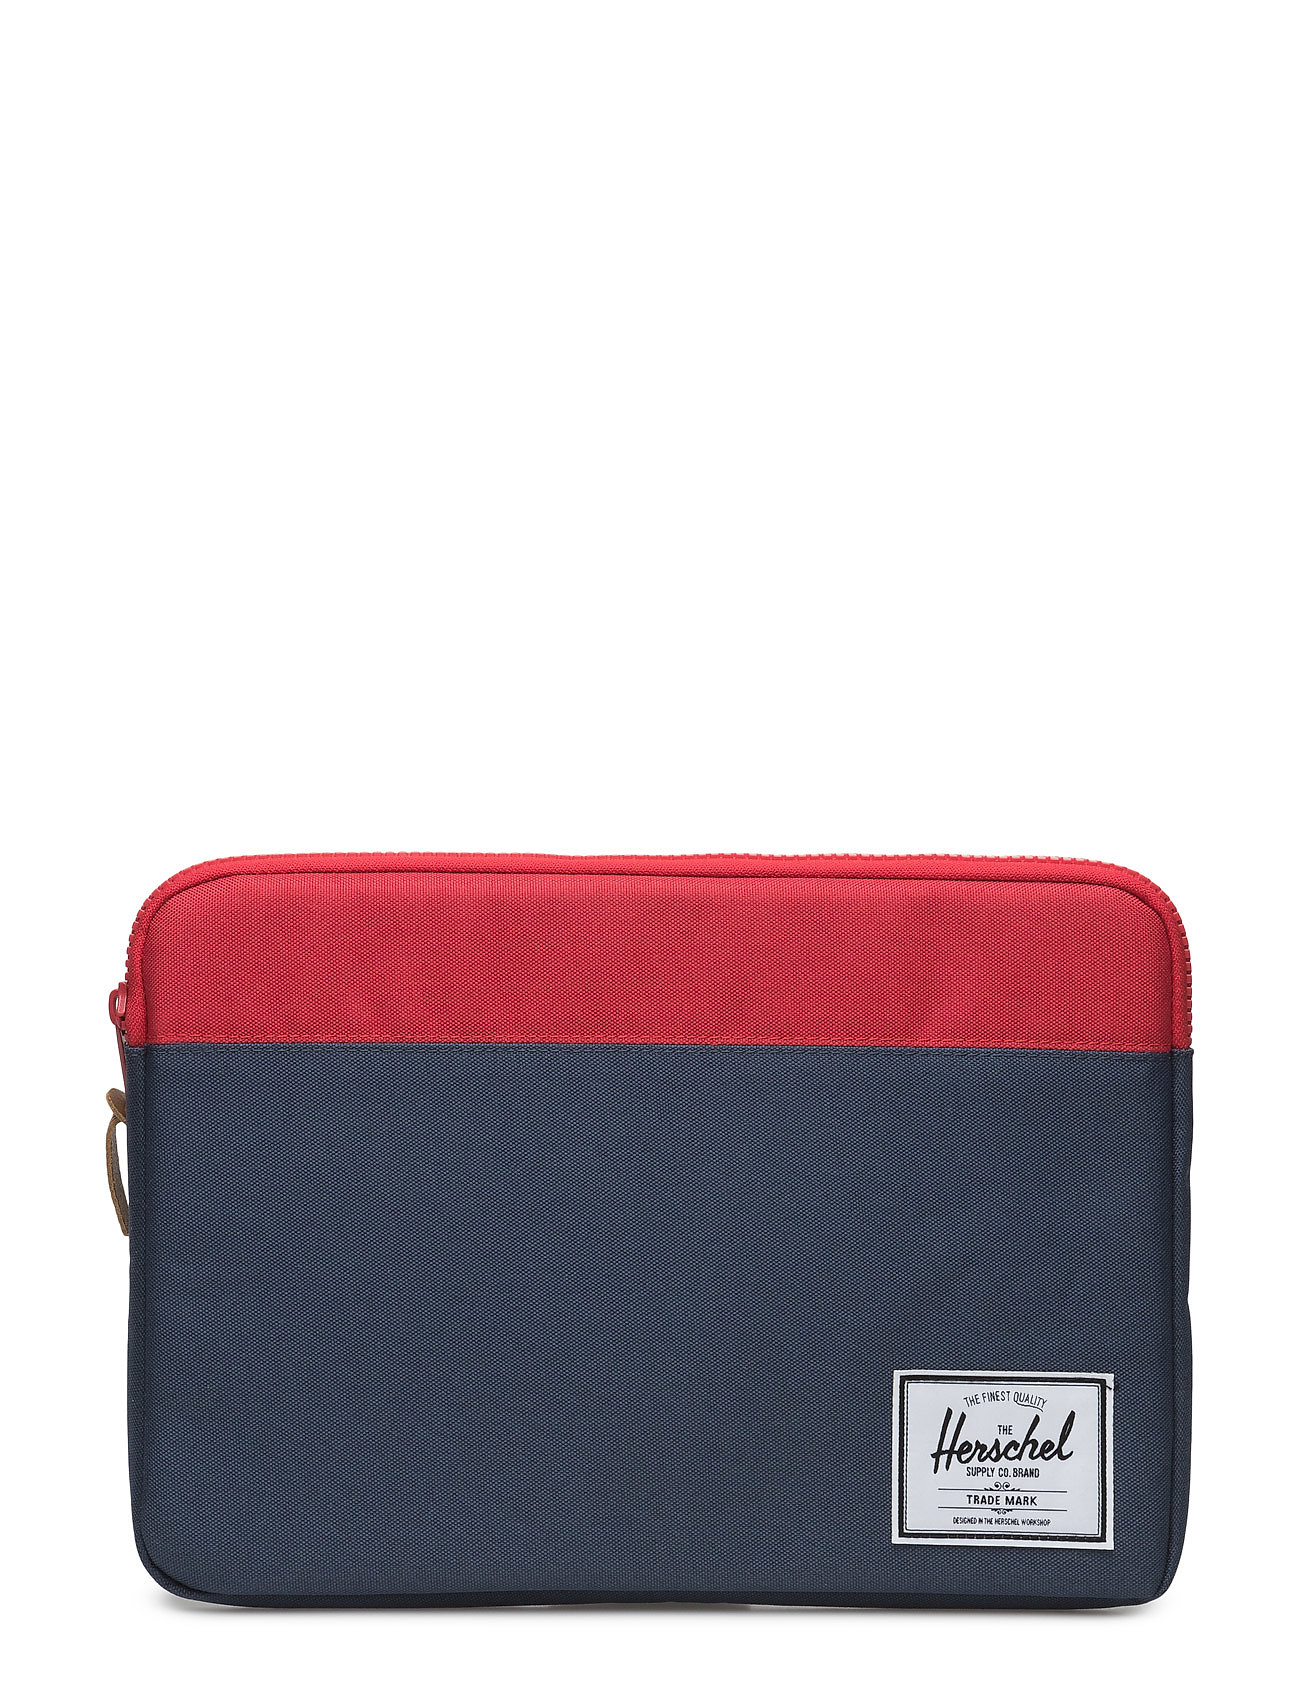 Anchor Sleeve For 13 Inch Herschel Tasker til Unisex i